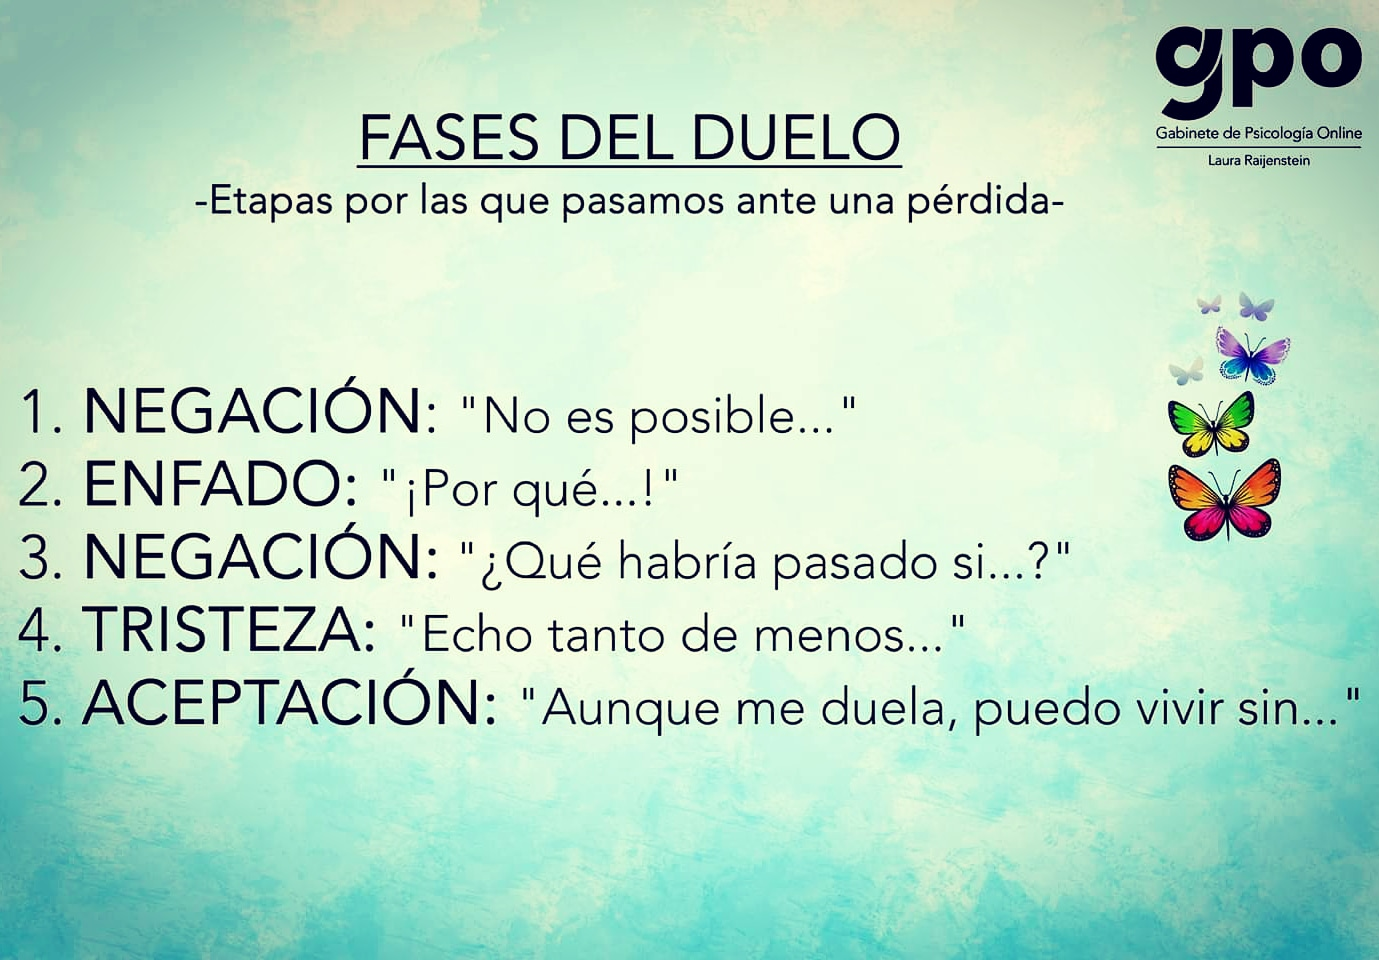 Fases del Duelo